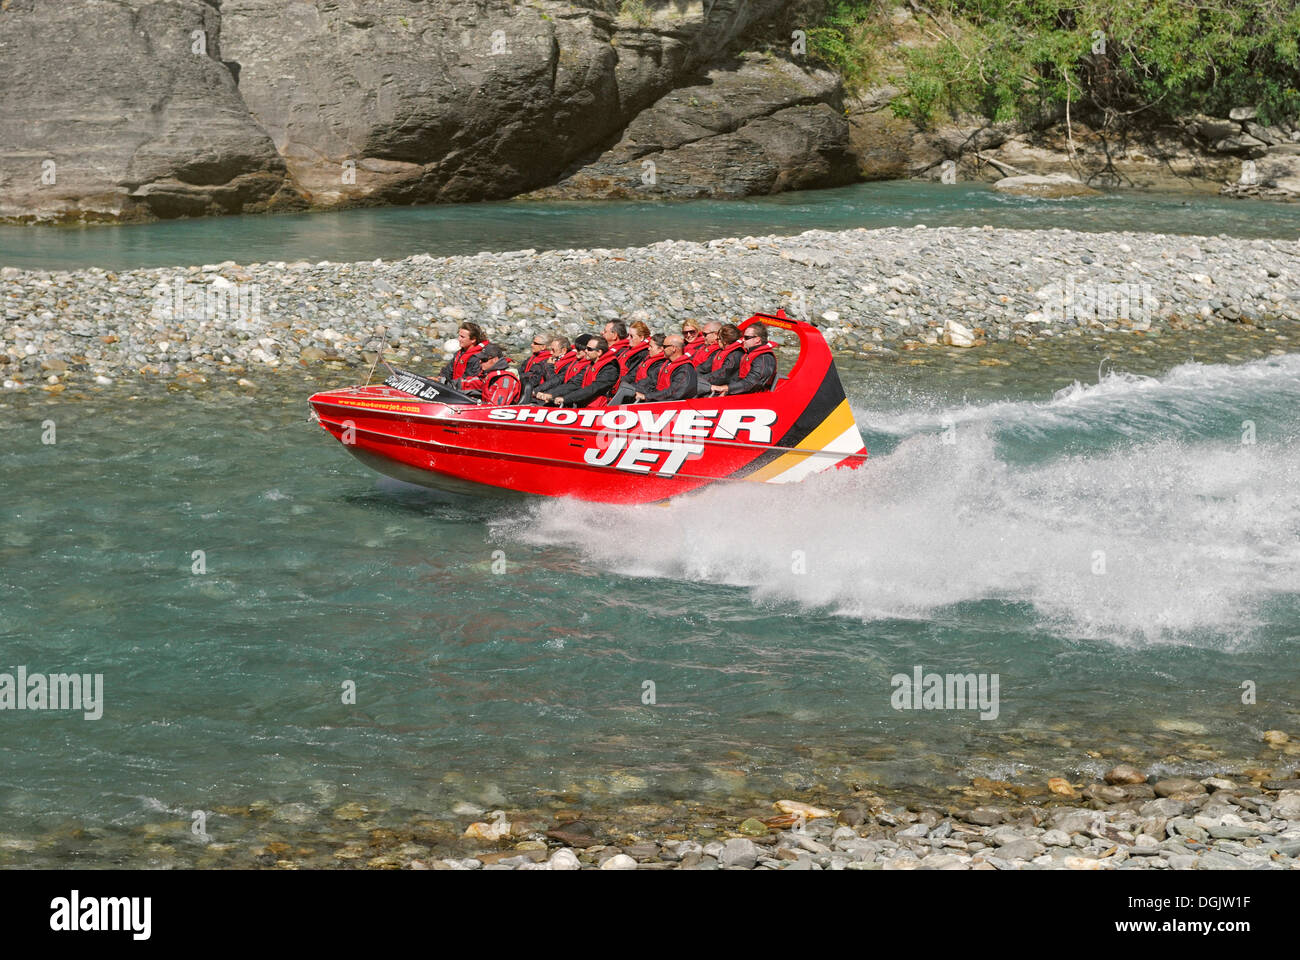 Jetboat, speedboat on the Shotover River, Queenstown, South Island, New Zealand - Stock Image